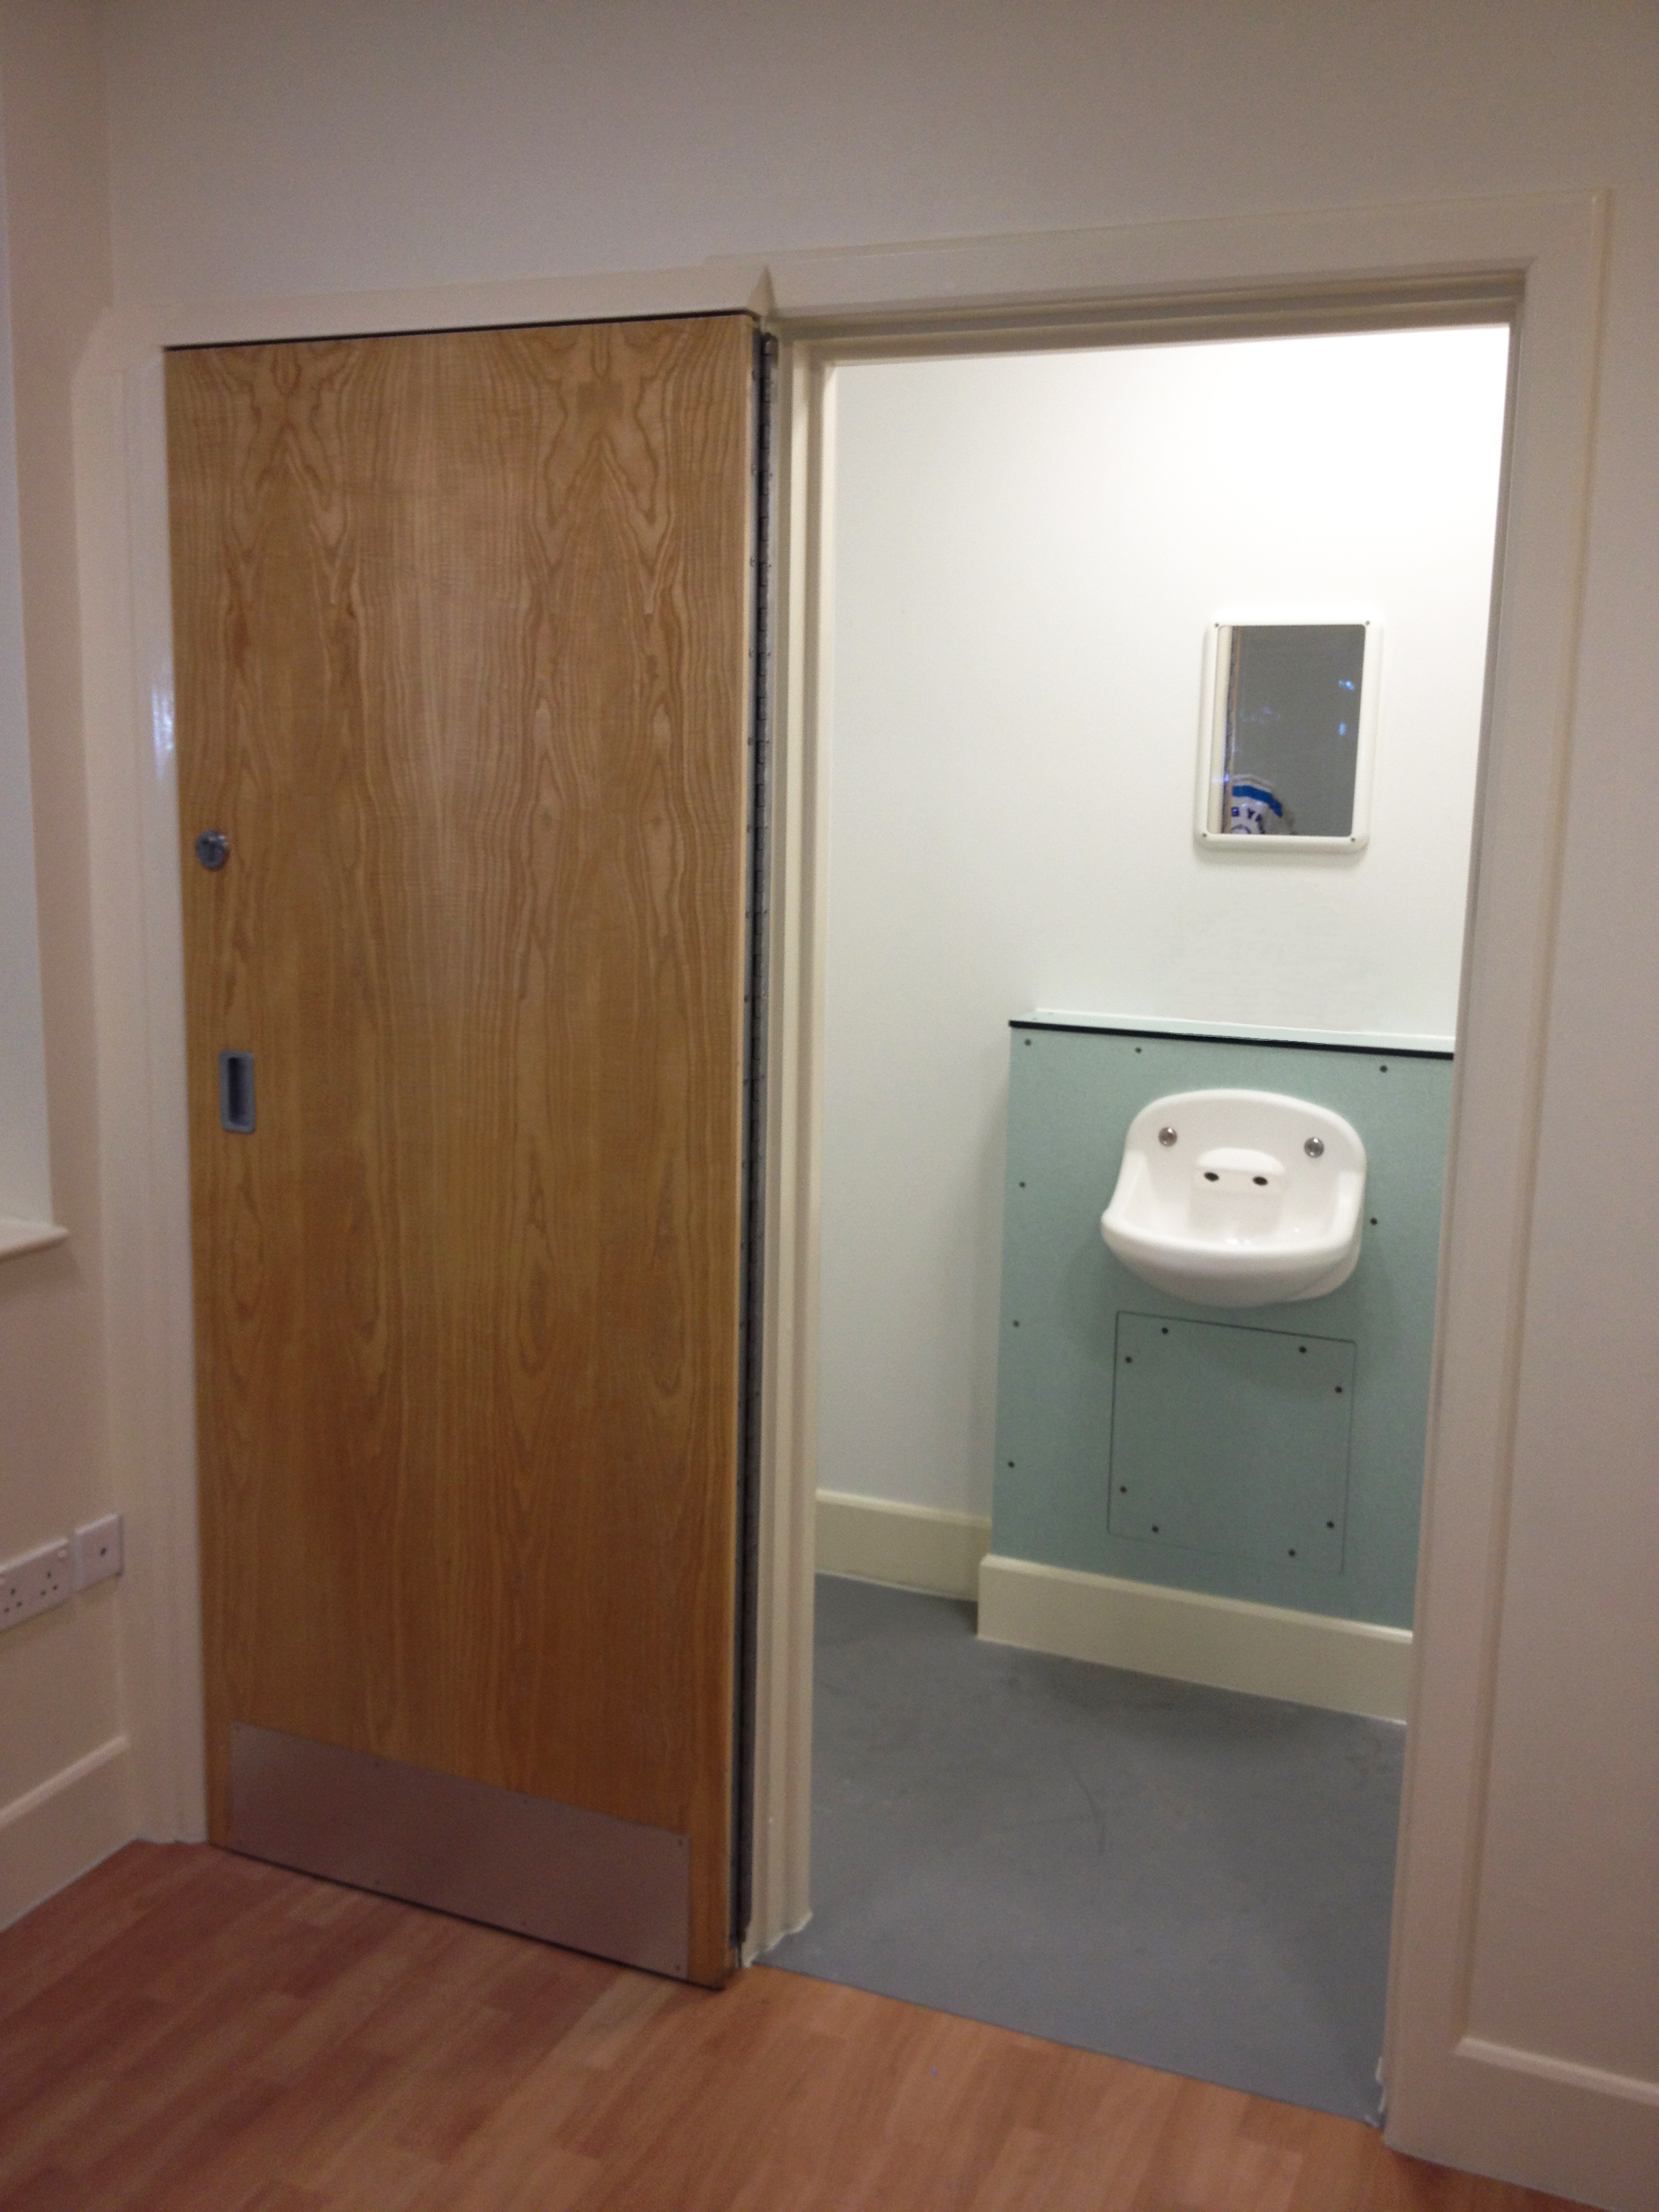 Seclusion Room - 180 Degree Opening and Locking Door - Open ... & Seclusion Room Doors Cell Doors Multipoint Locking Vision Panels